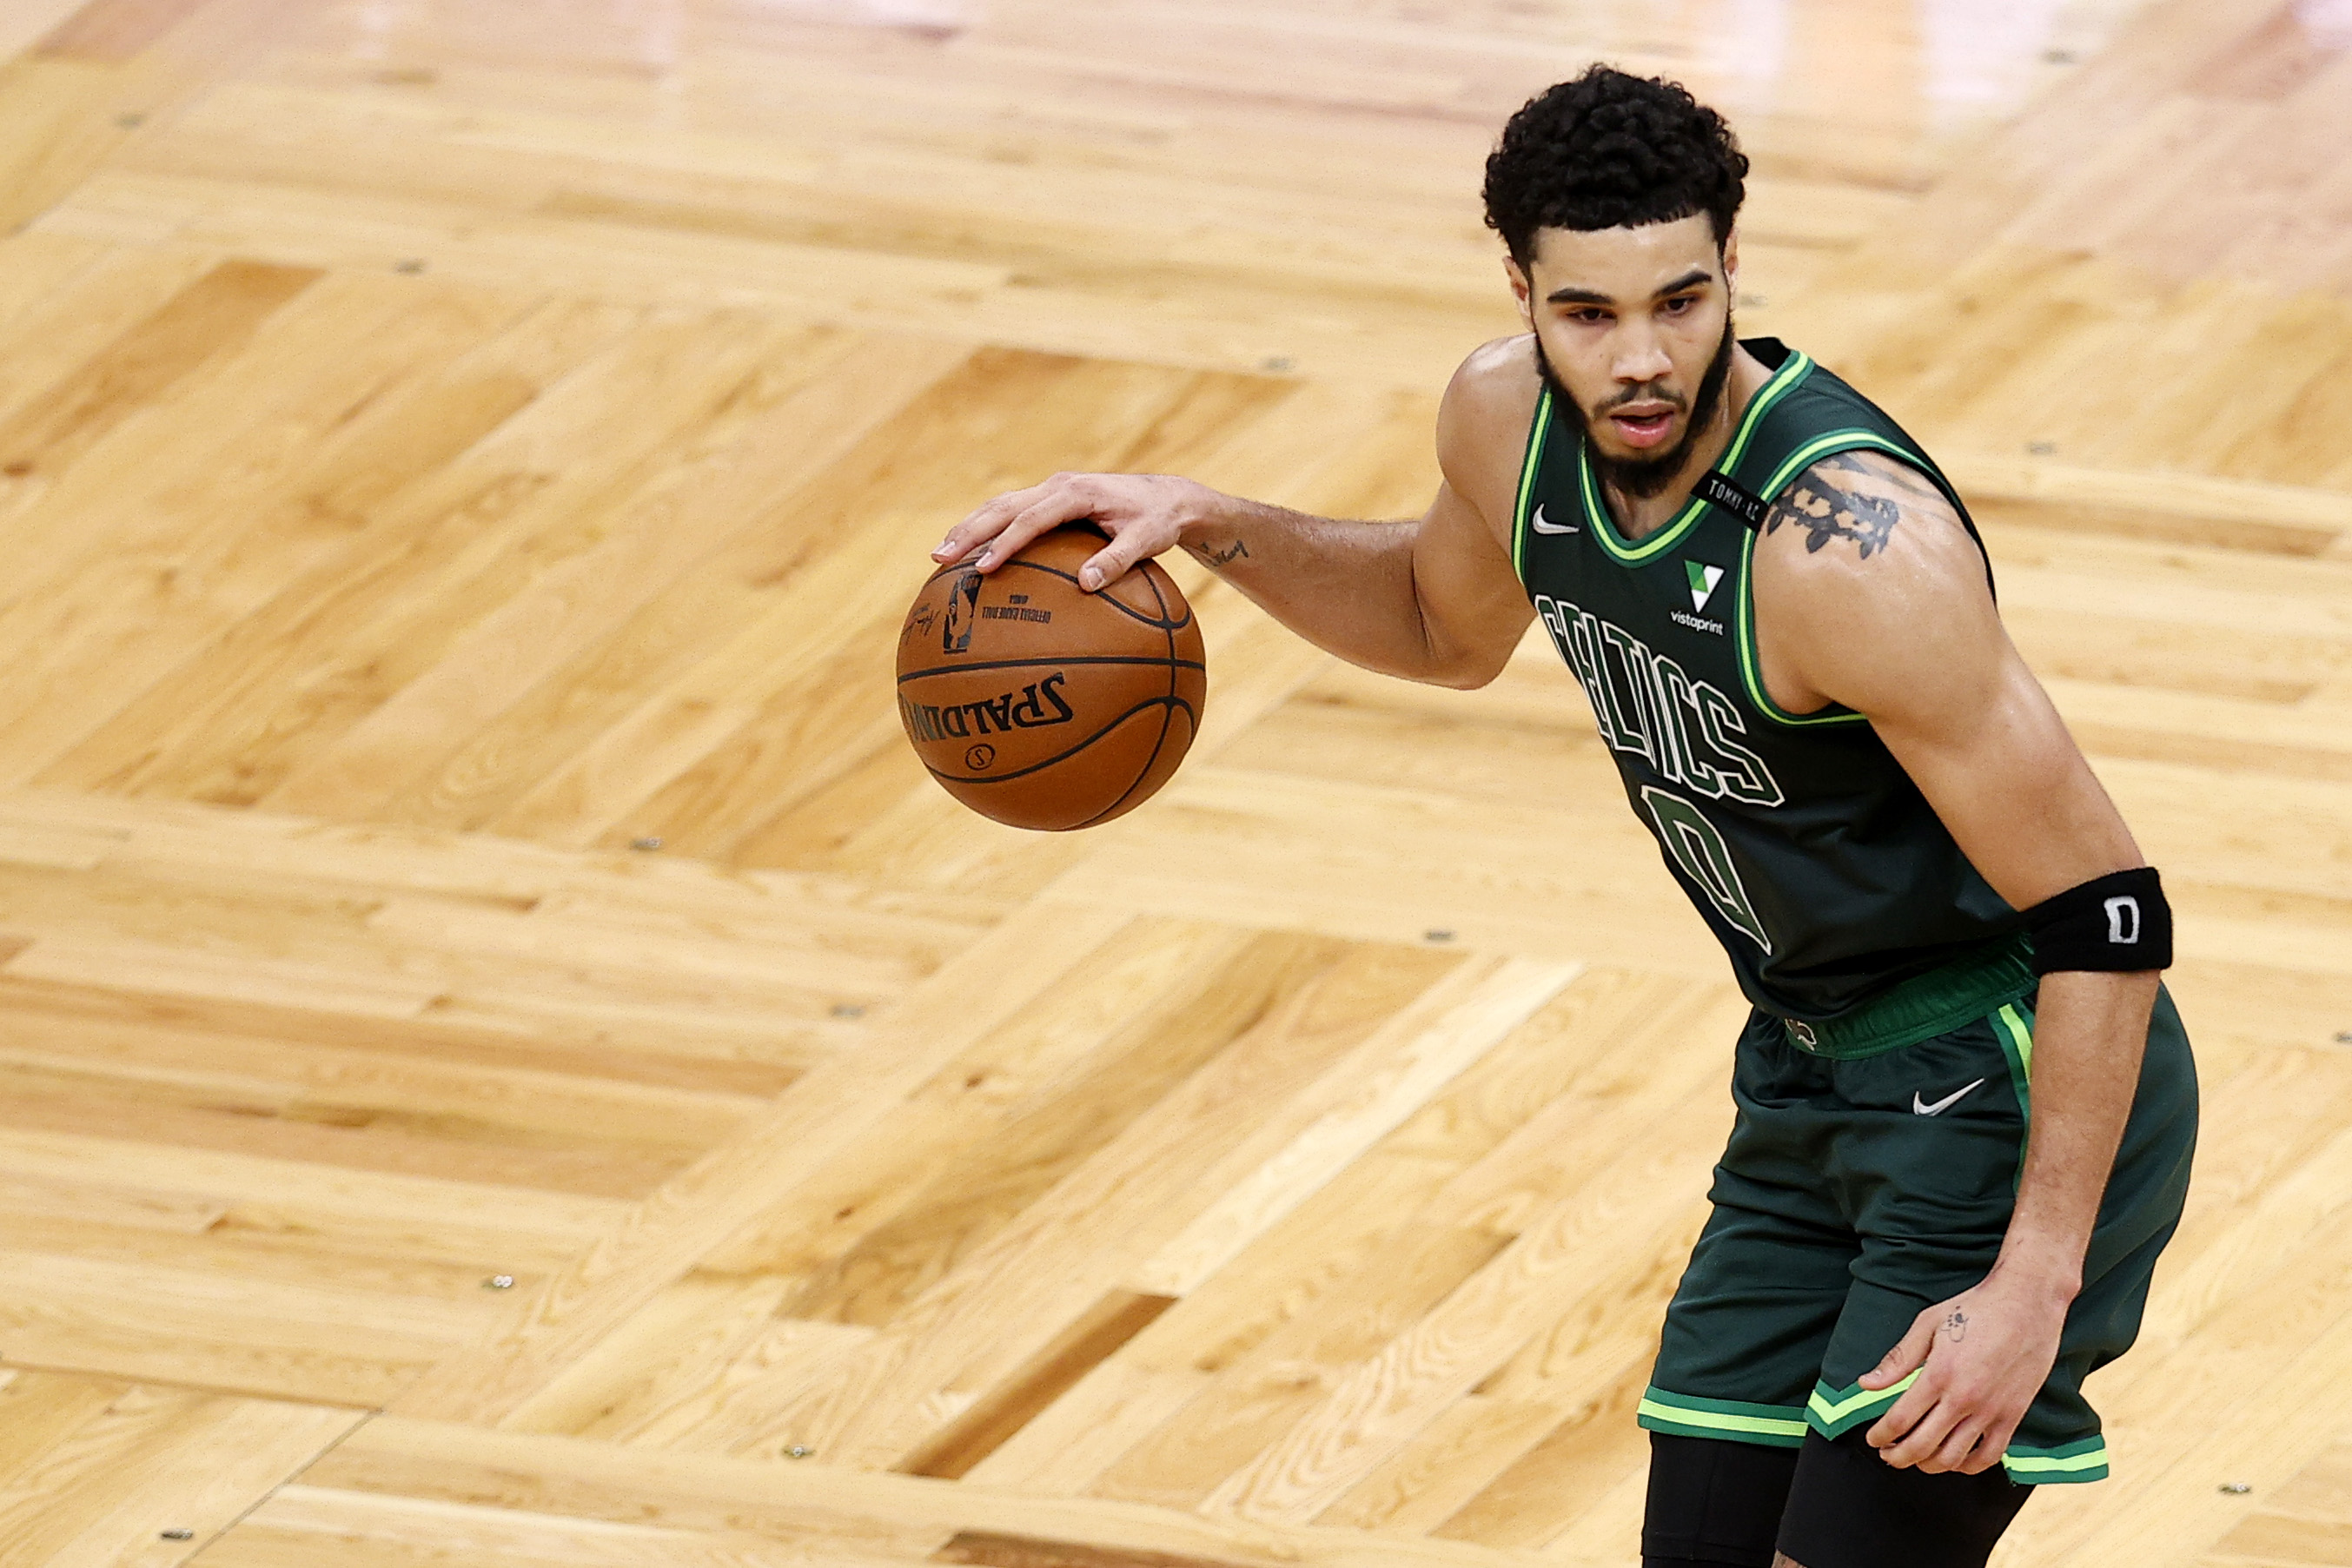 Jayson Tatum is putting up big numbers in a tough season for the Boston Celtics.